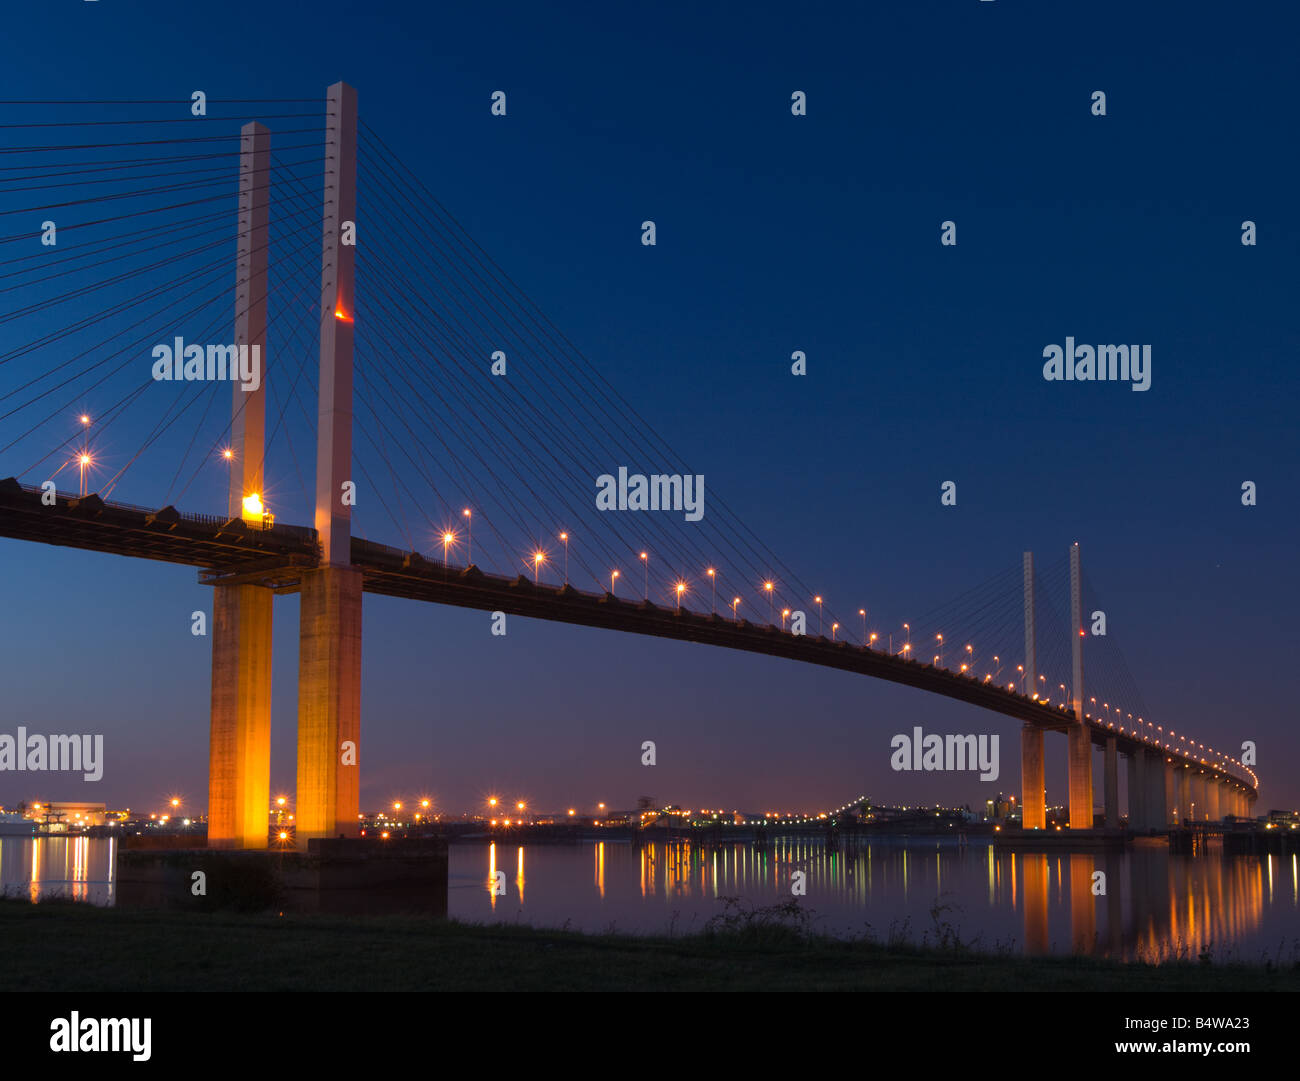 The Dartford Crossing from the South bank of the Thames - Stock Image